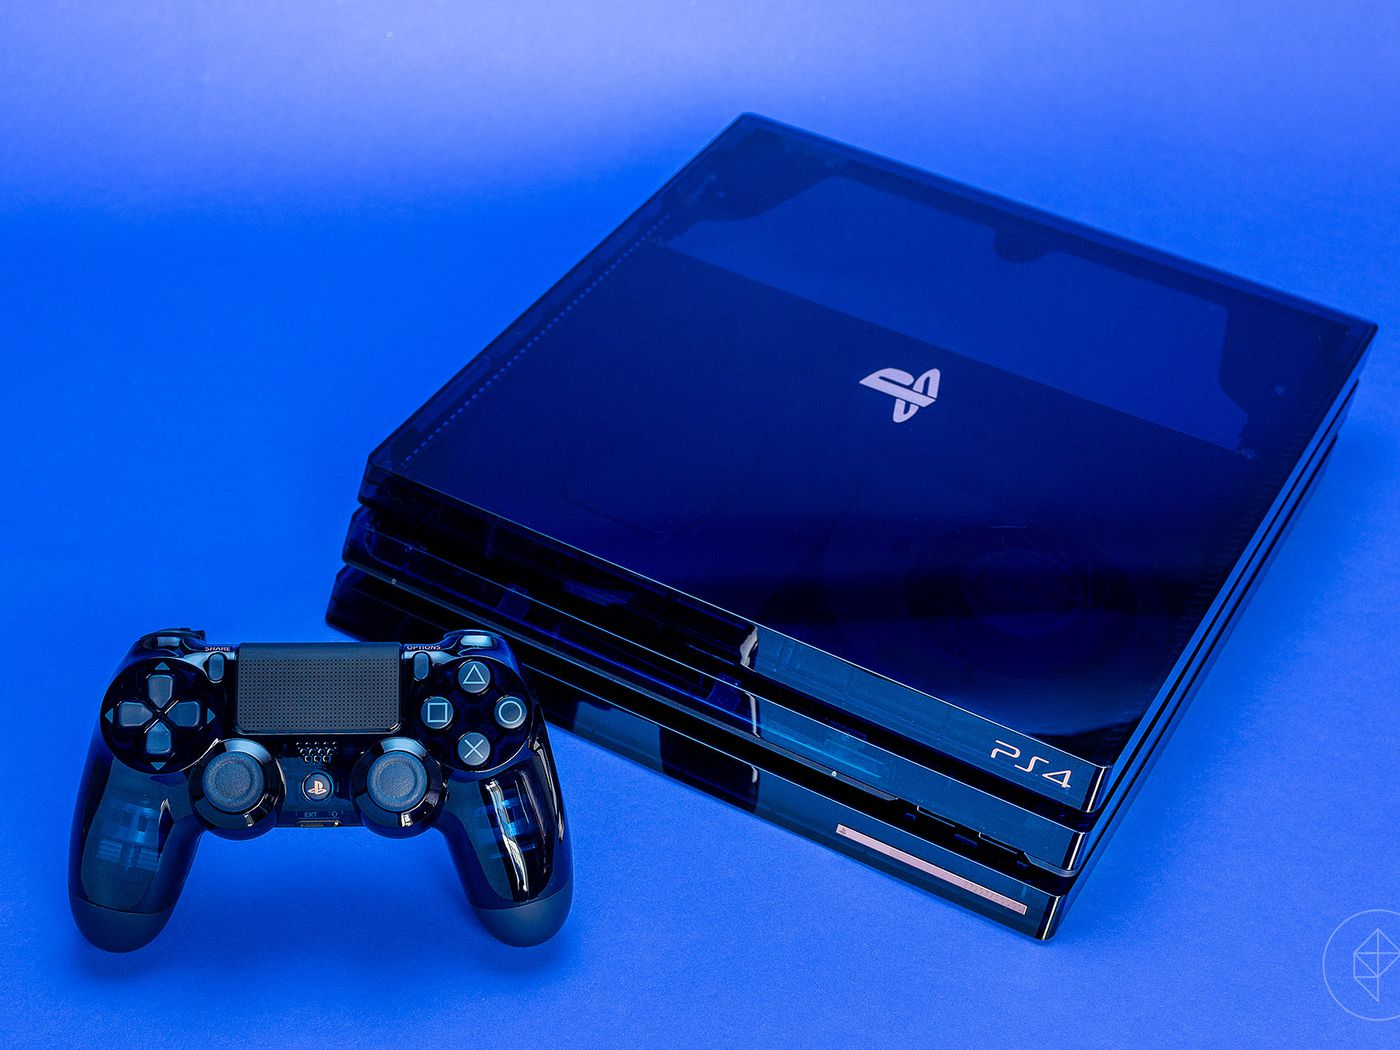 500 Million Limited Edition Ps4 Pro Detailed In Close Up